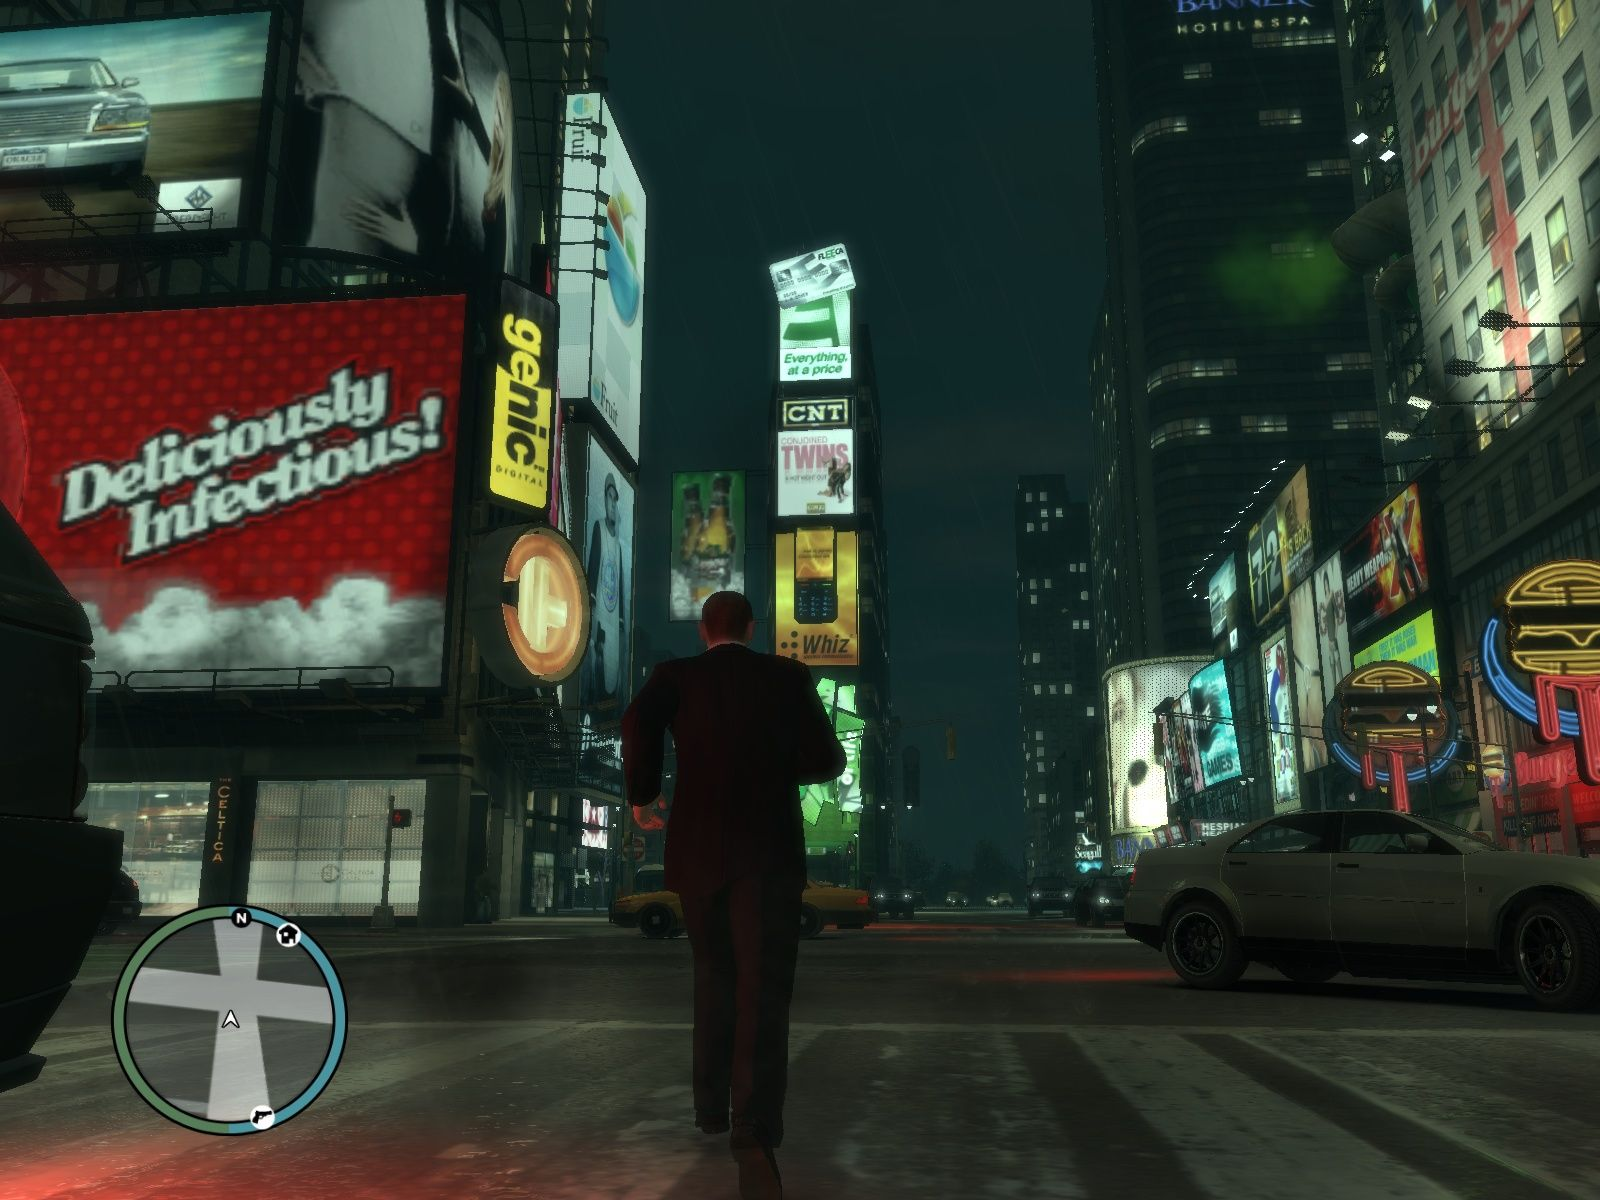 Grand Theft Auto IV Windows Time Square - no wait...that's somewhere else...